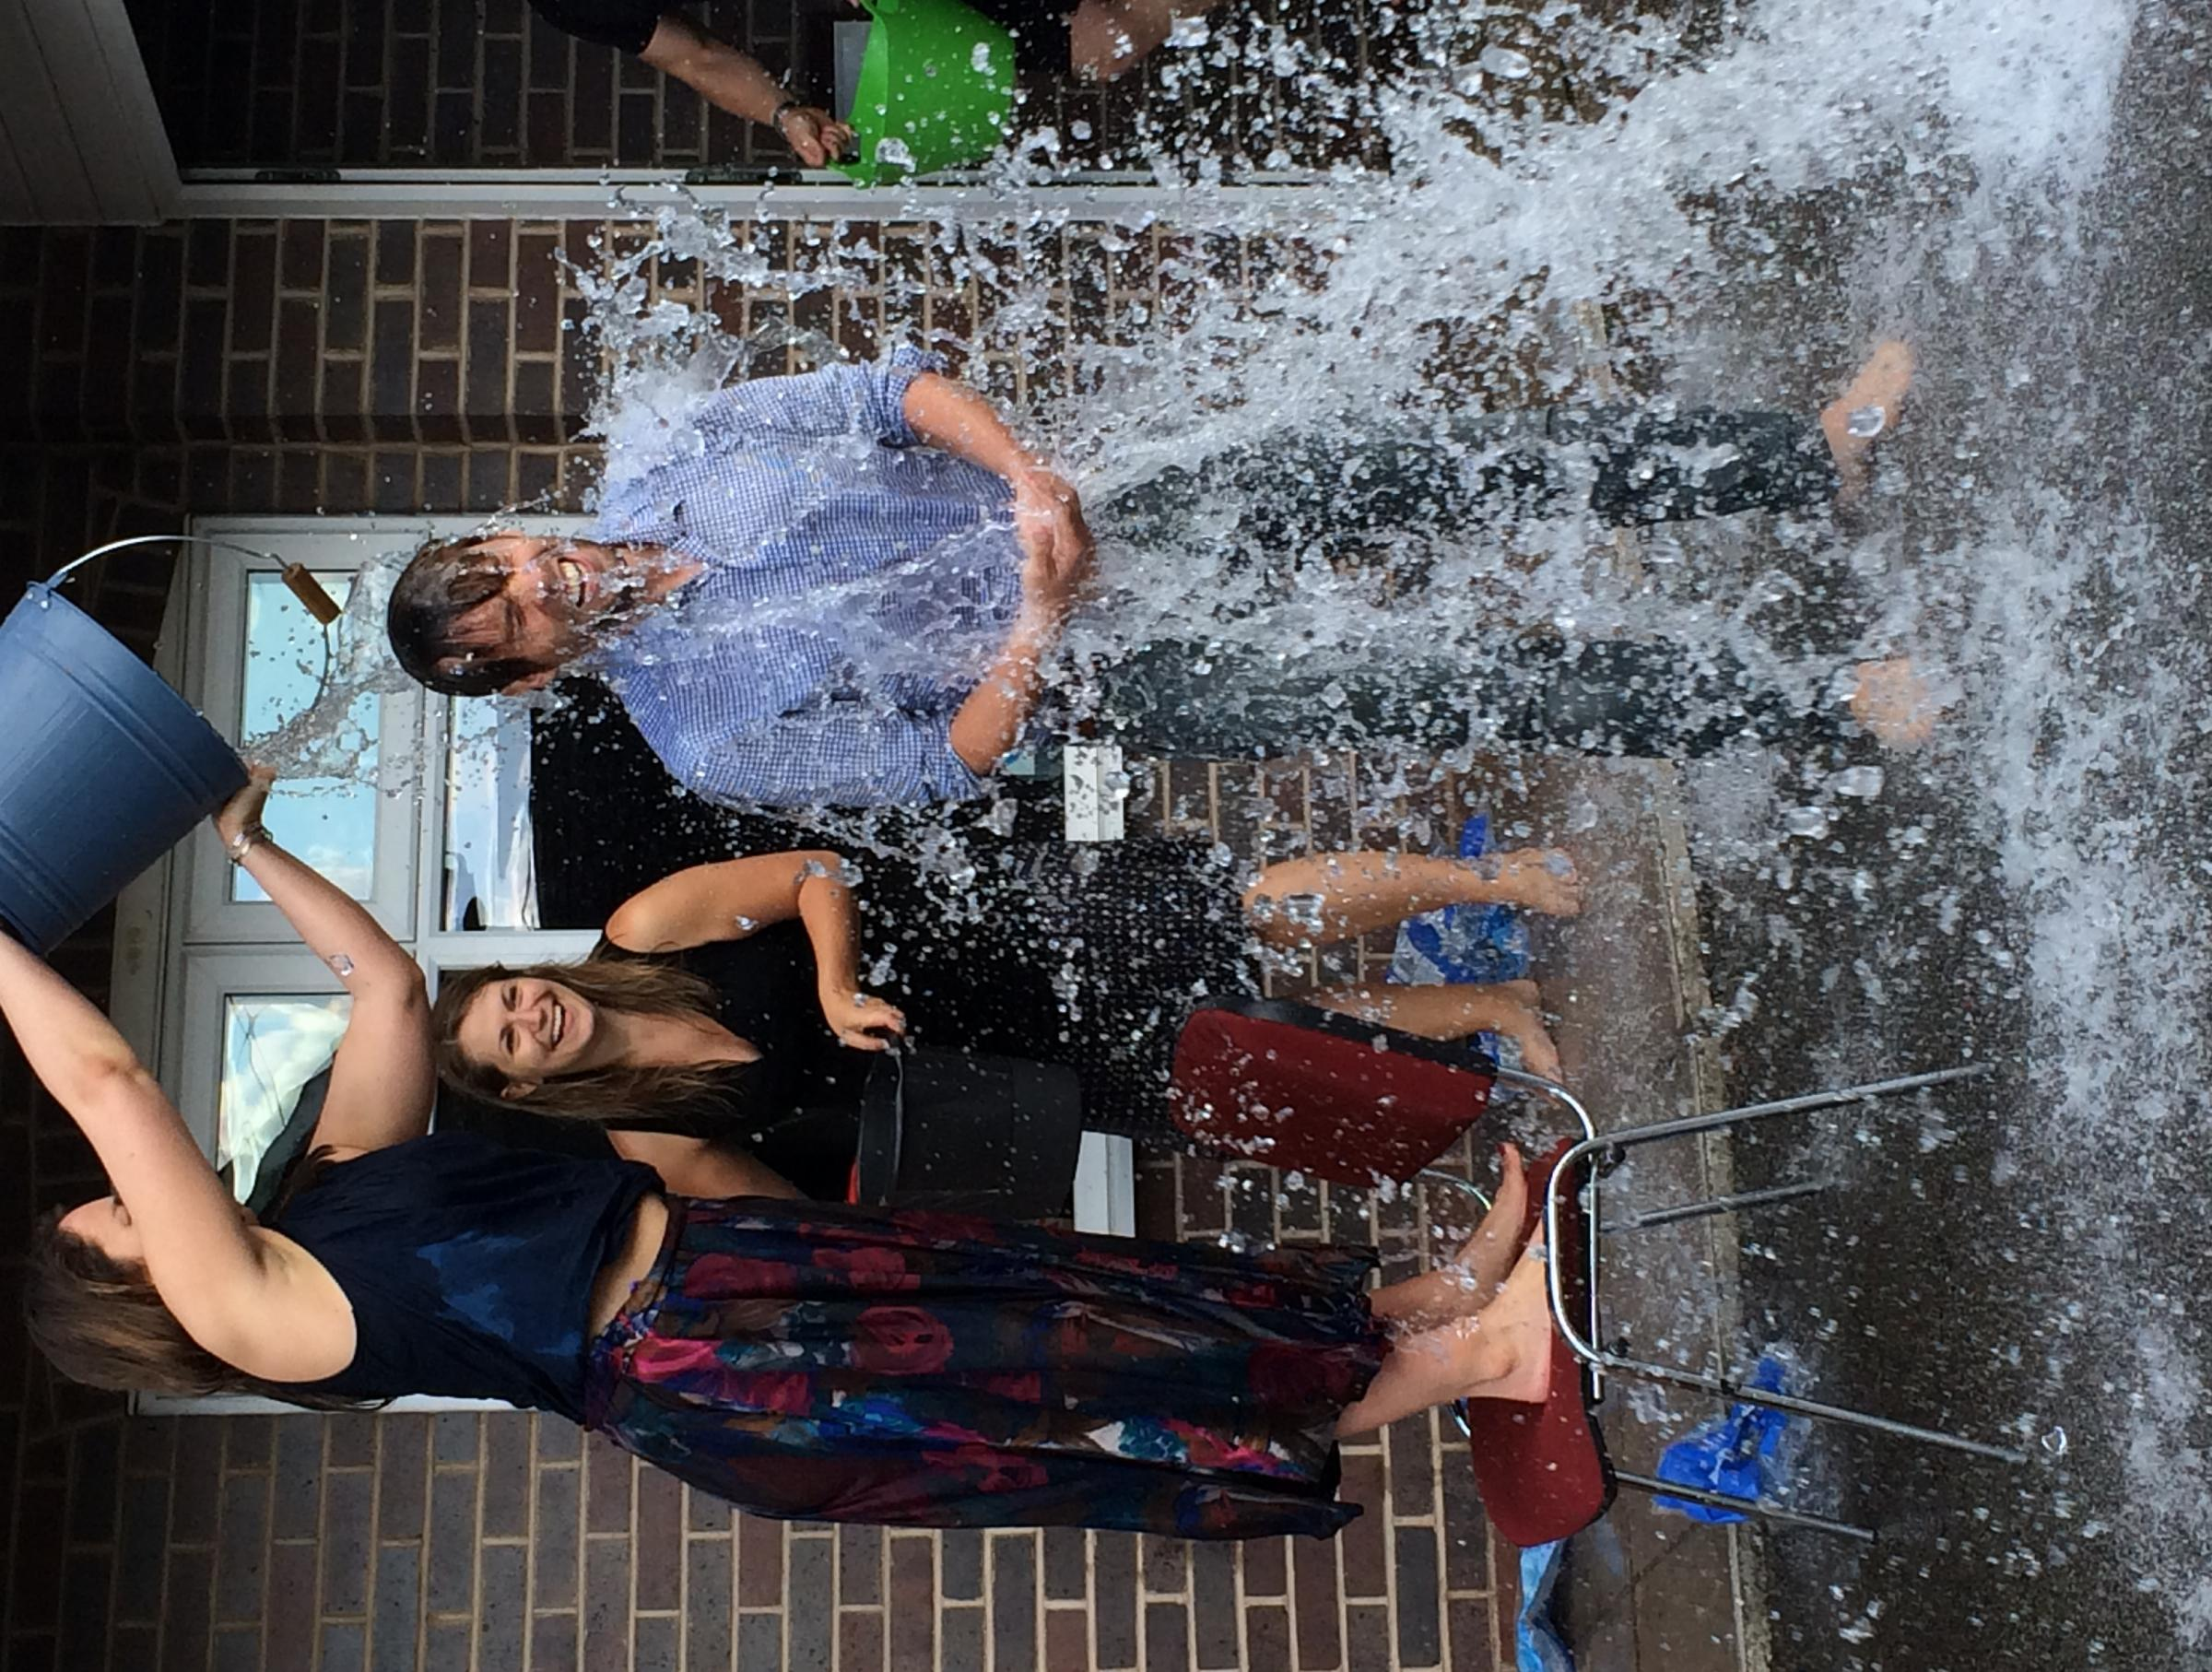 Malvern company's staff get a soaking - but it's all in a good cause